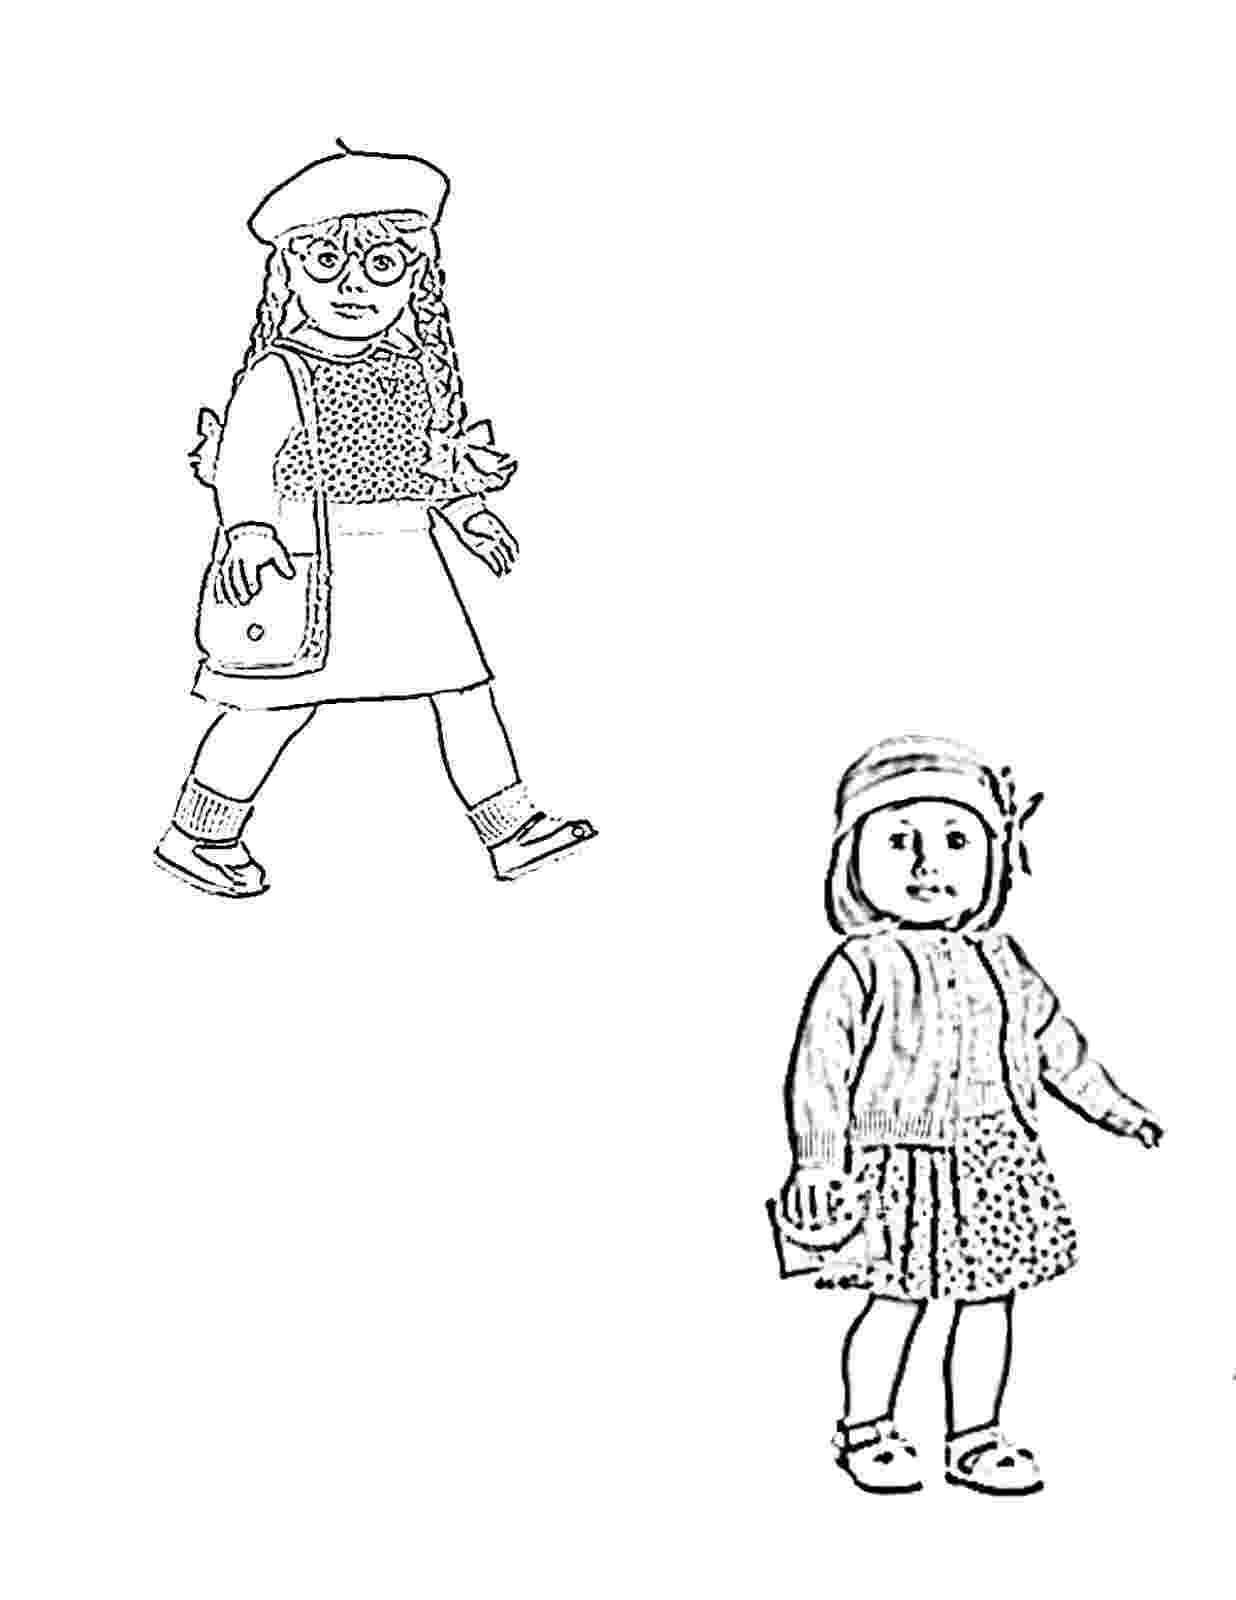 american girl doll coloring pages american girl coloring pages kit at getcoloringscom doll pages american girl coloring